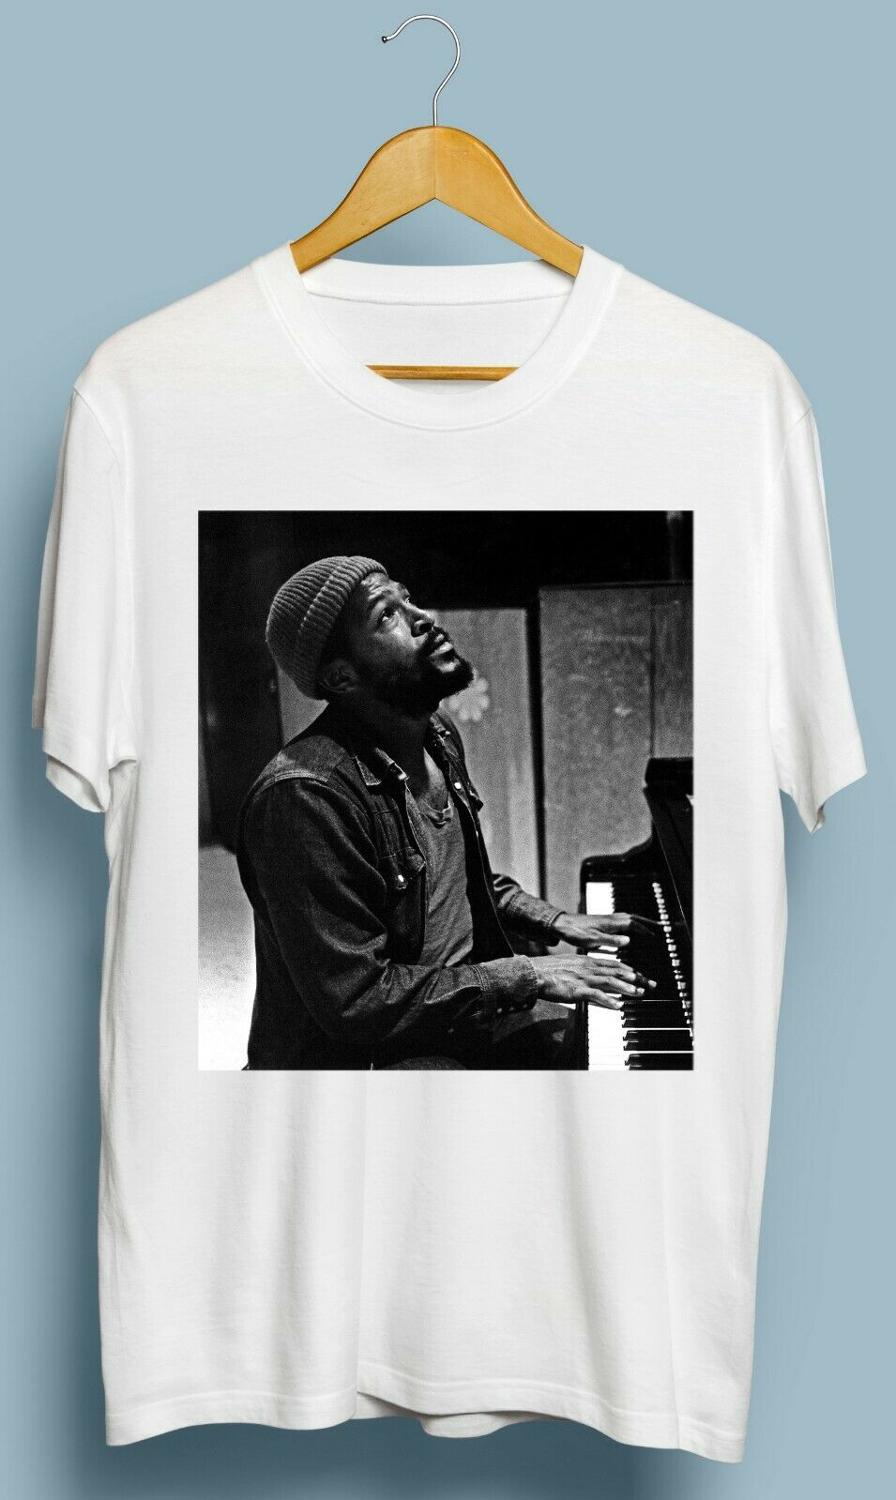 Vintage Marvin Gaye Piano T Shirt 2019 Cotton Men Fashion Summer Style Fitness Brand Movie T Shirt image